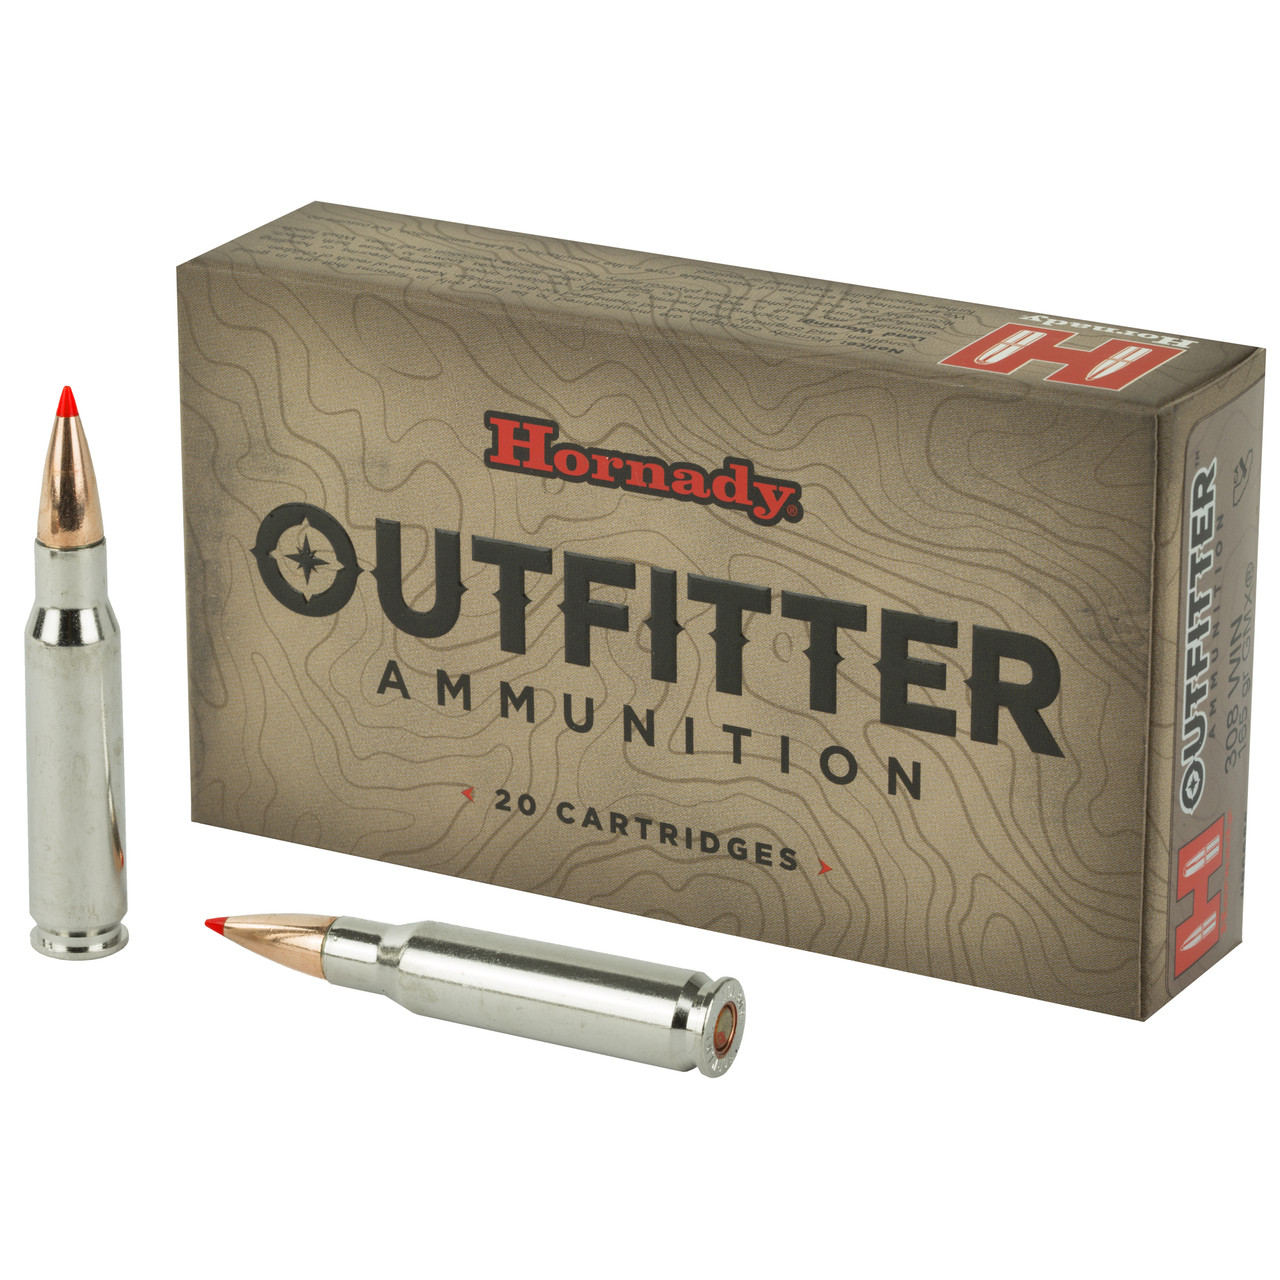 Hornady Outfitter 308 Winchester 165 Grain GMX 20Rd Box 80986 - Ships  Within 24 Hours!